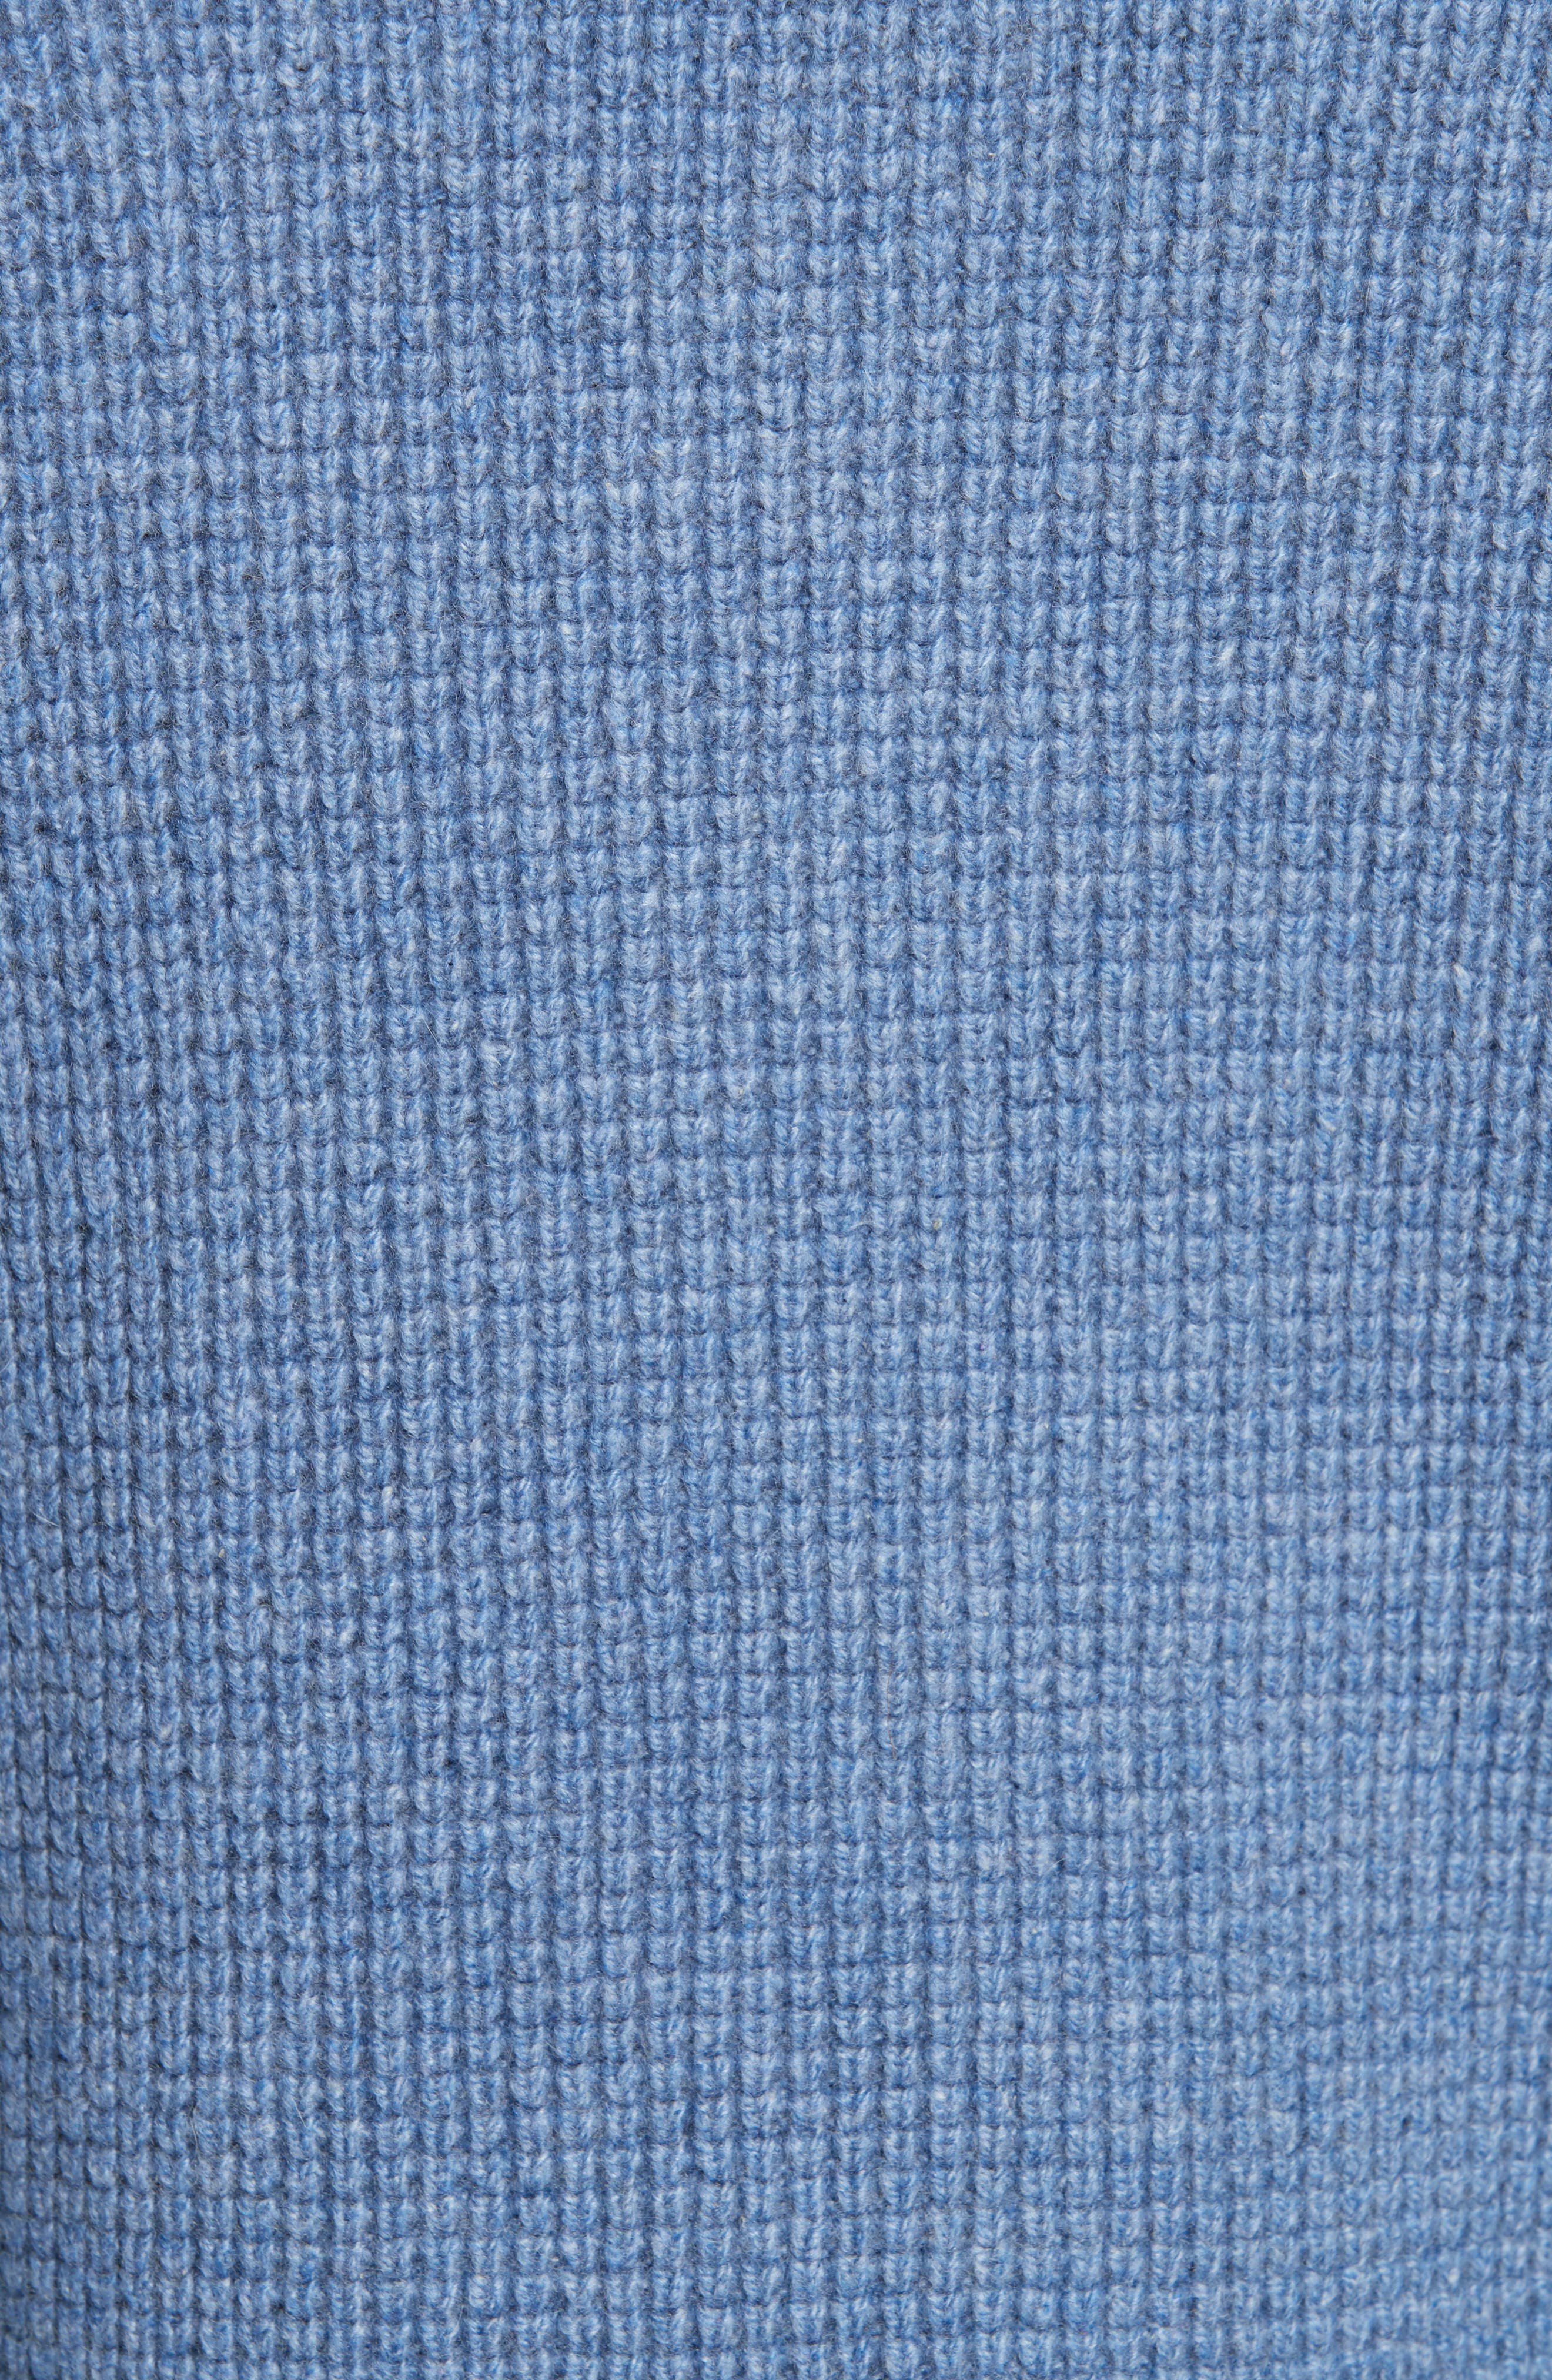 Waffle Knit Cashmere Crewneck Sweater,                             Alternate thumbnail 5, color,                             LIGHT BLUE